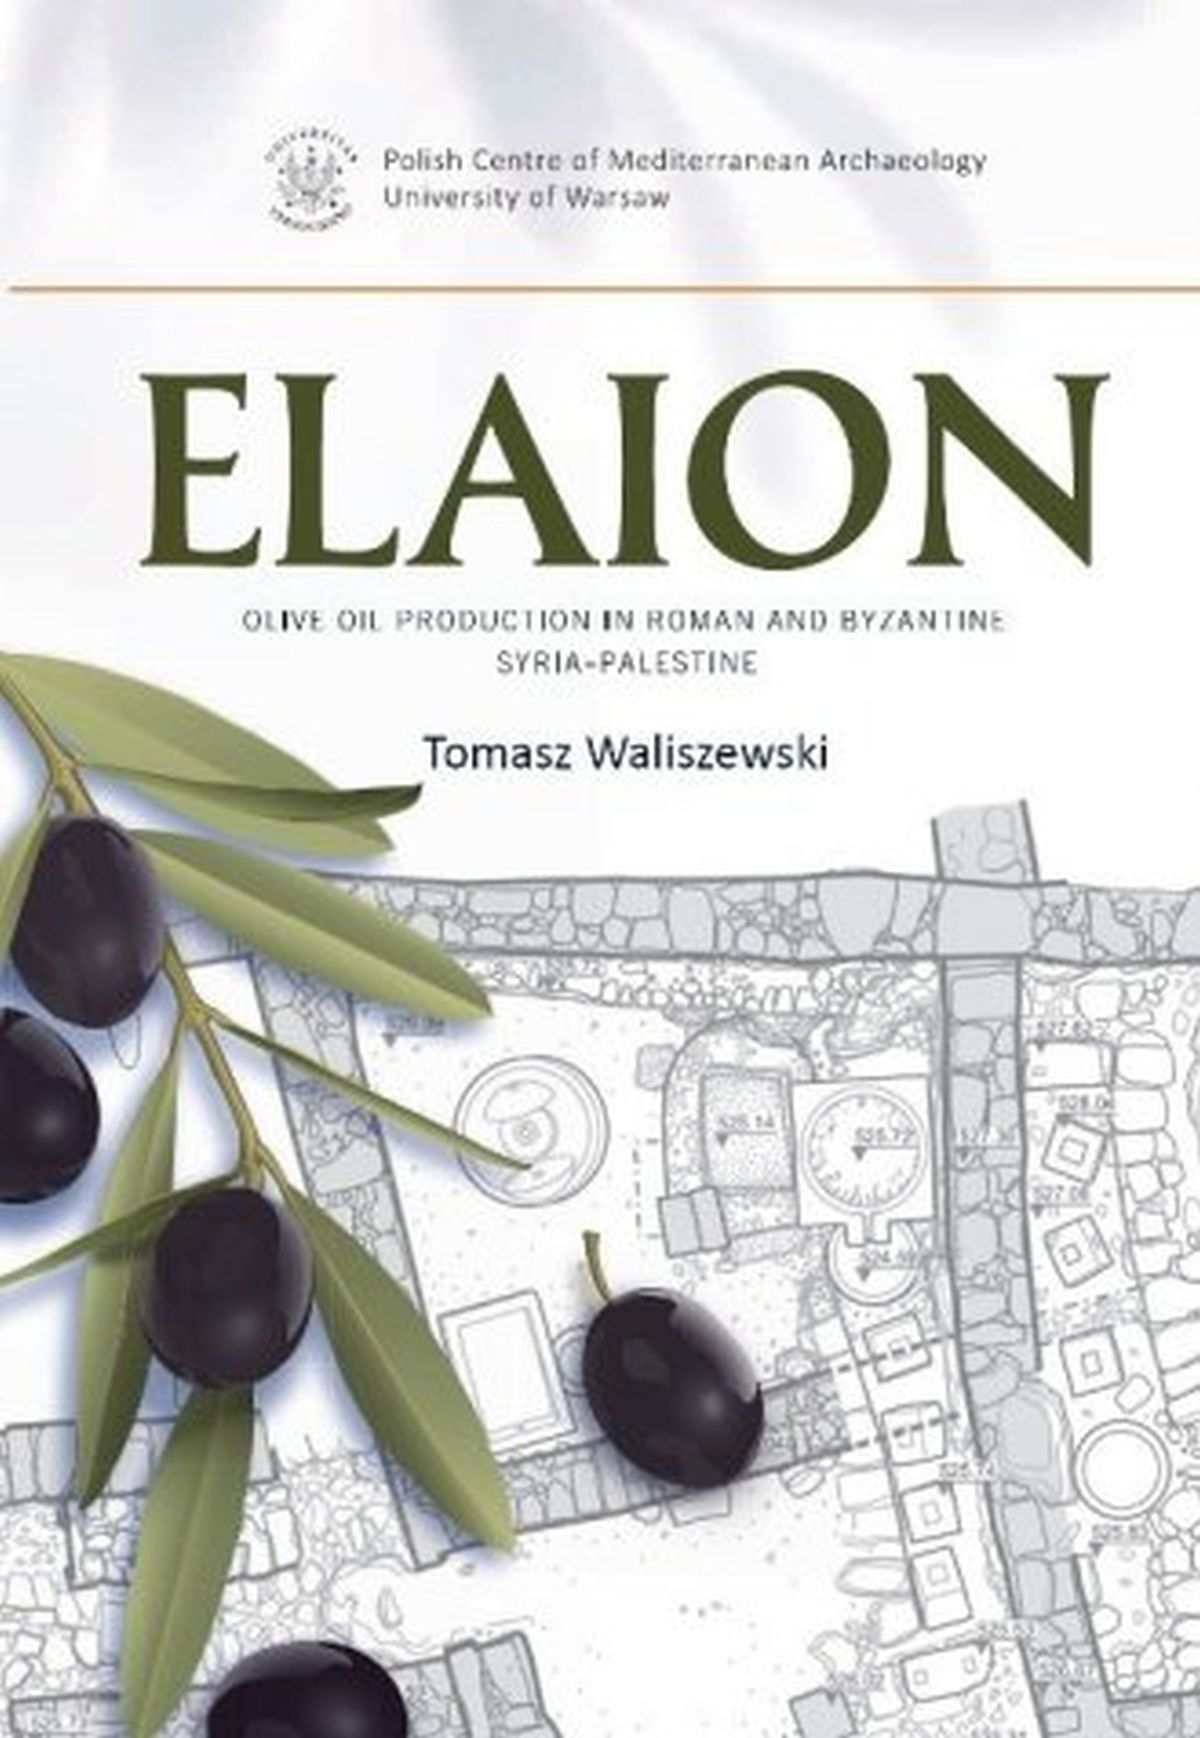 Elaion. Olive oil production in Roman and Byzantine Syria-Palestine. PAM Monograph Series 6